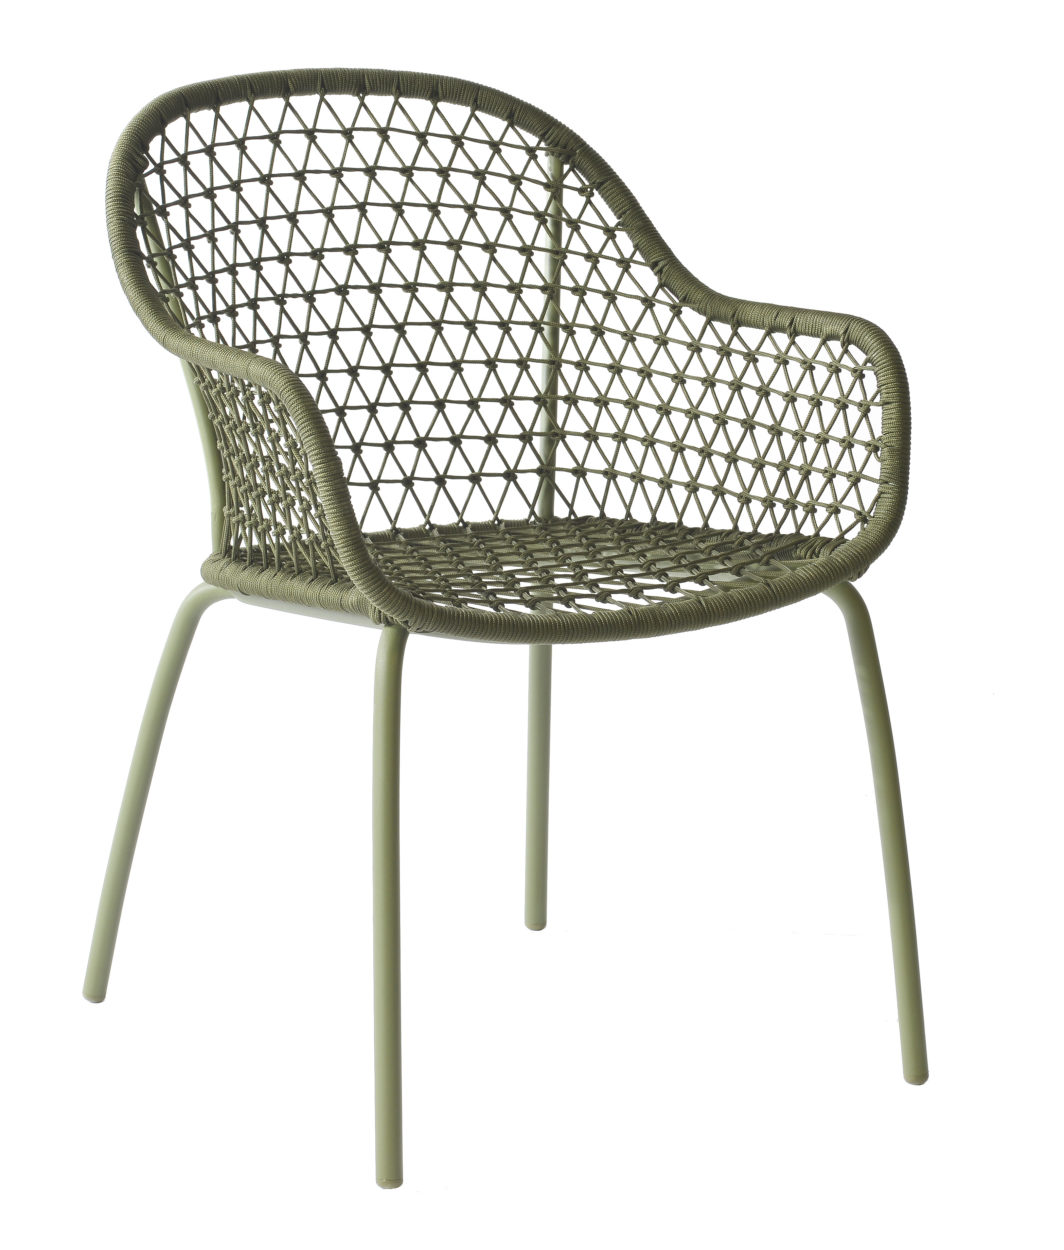 Max & Luuk Anna chair Rope M4050 moss